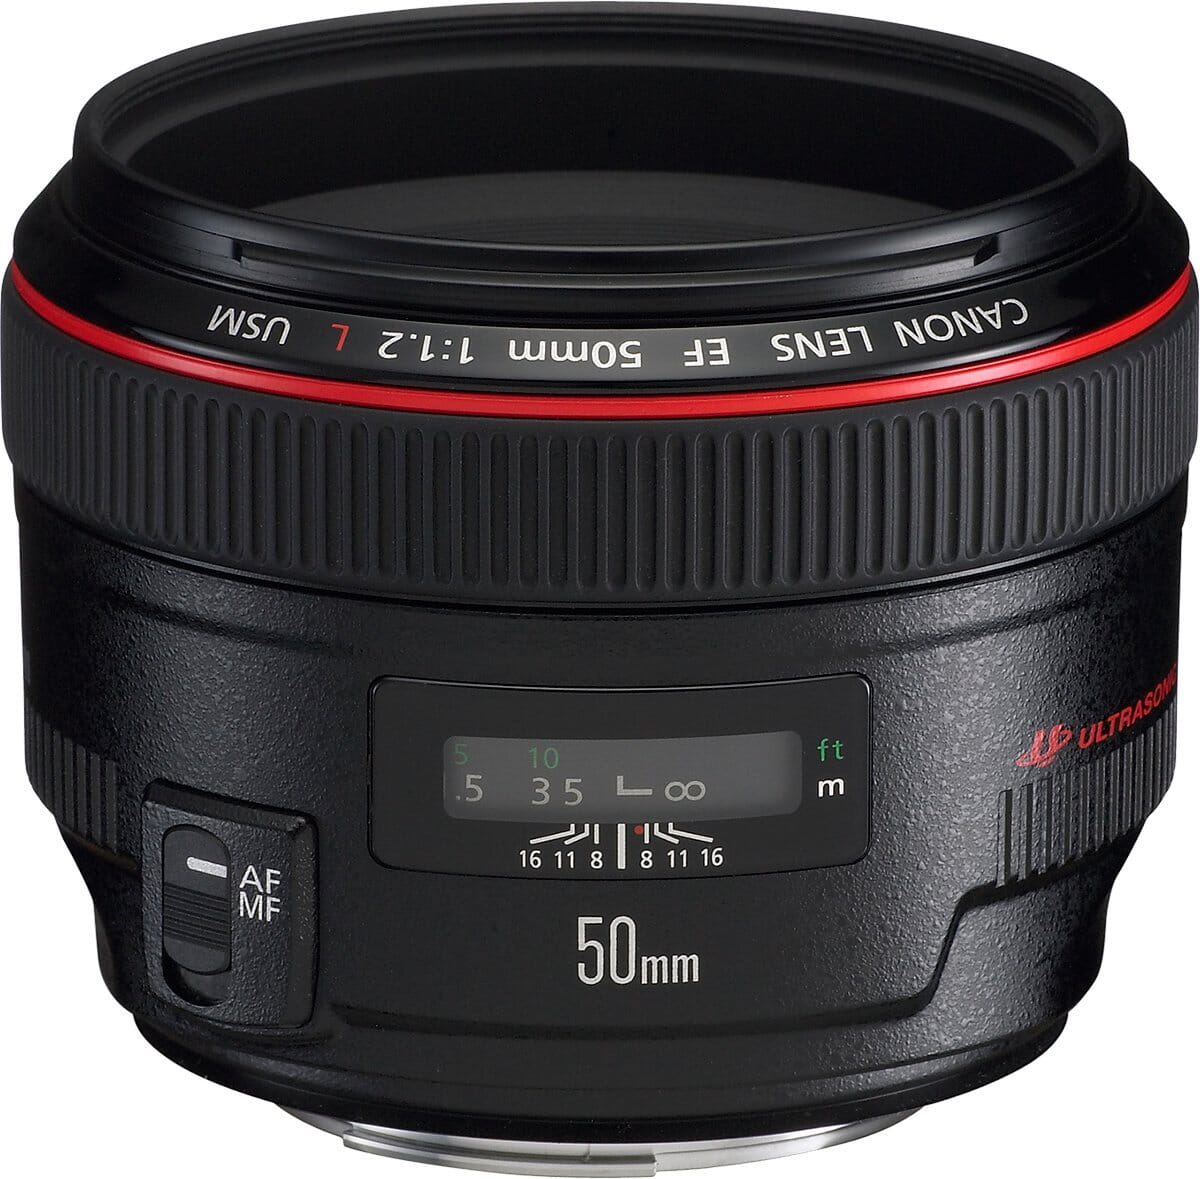 Canon 50mm best street photography lens for canon